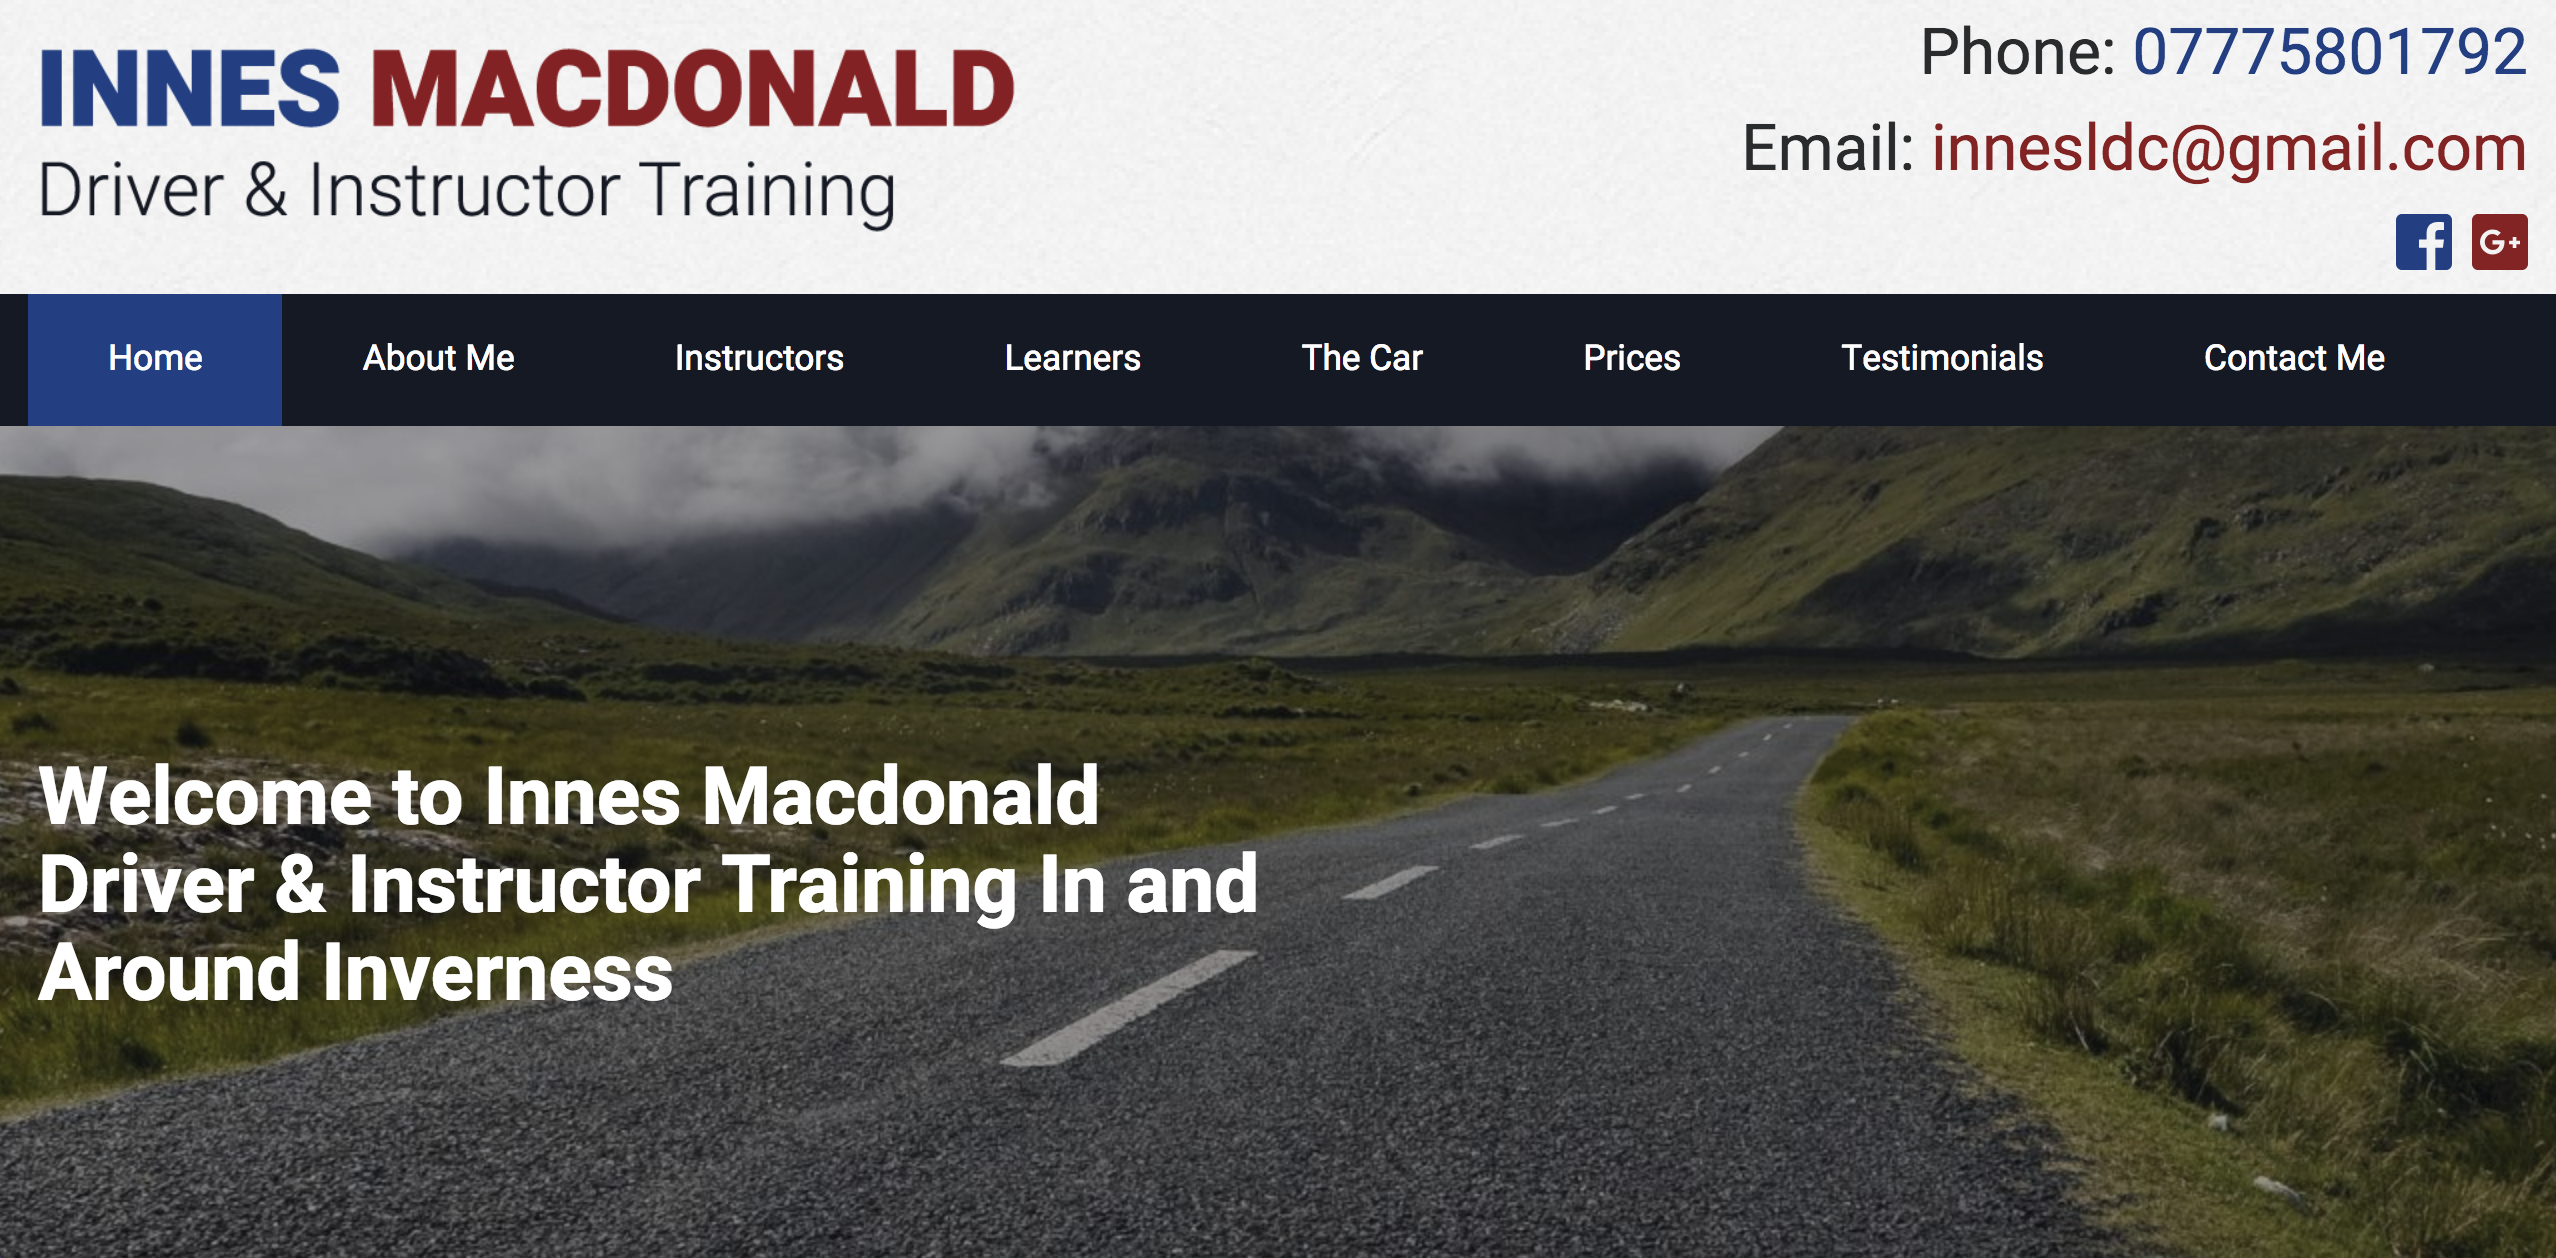 Innes Macdonald Driver & Instructor Training